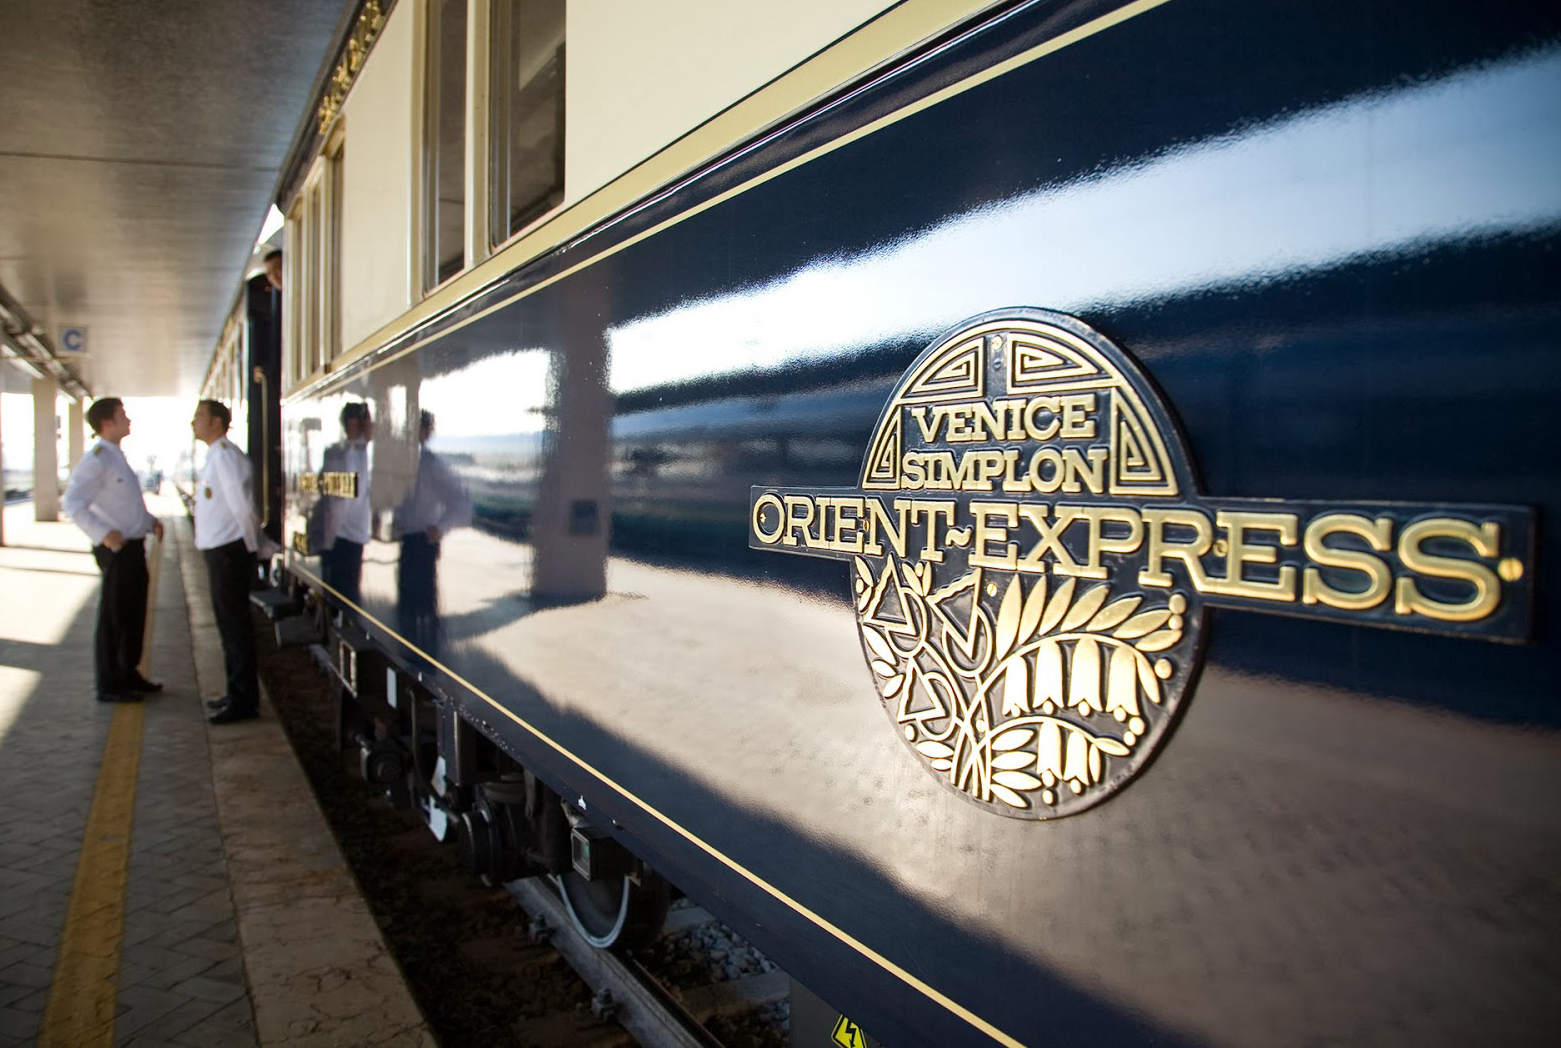 Ongaro & Fuga for the Orient-Express Train